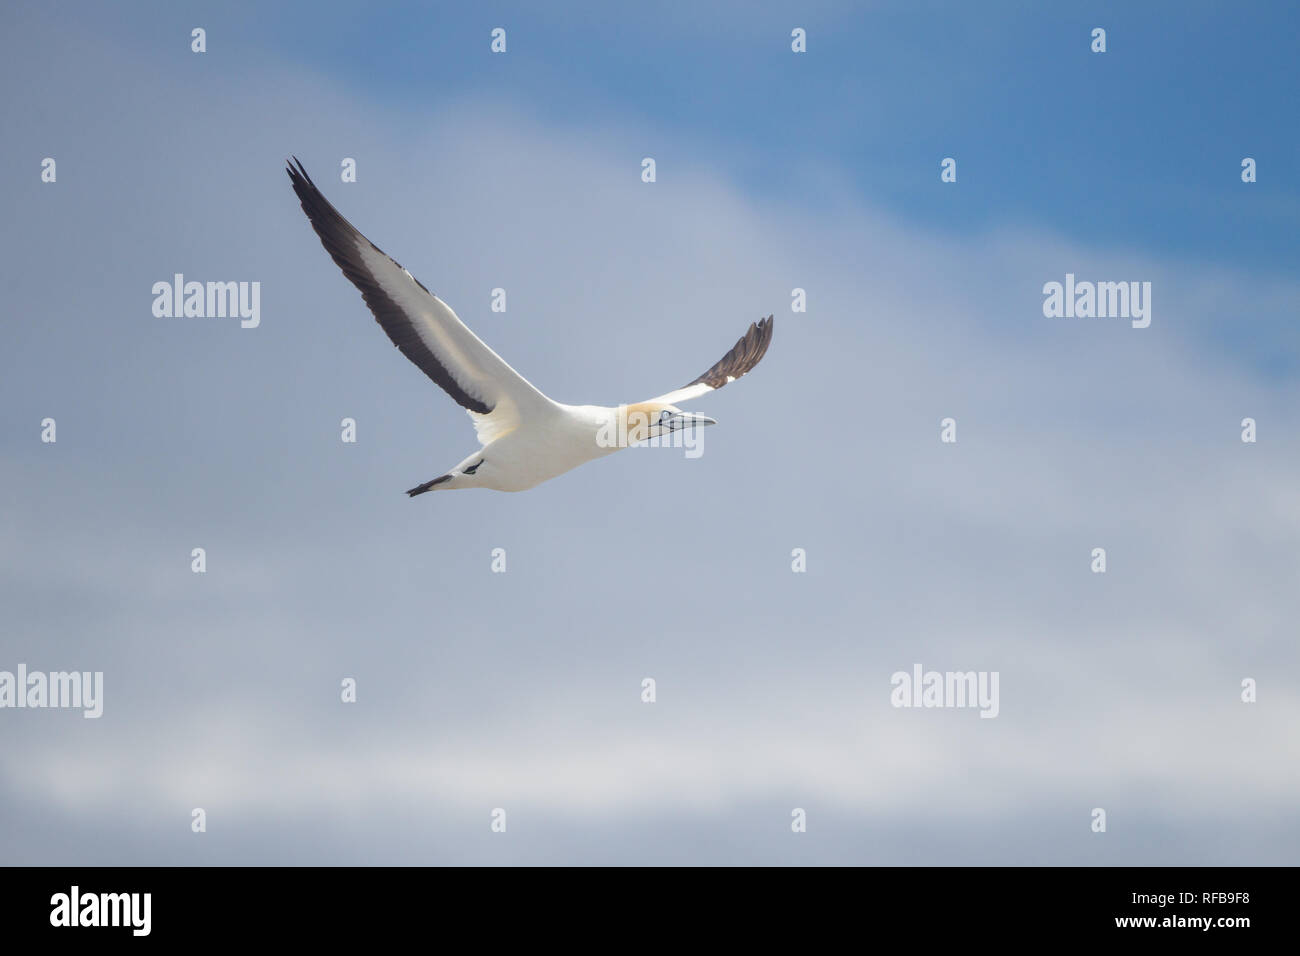 Bird Island Nature Reserve in Lambert's Bay, Western Cape Province, South Africa, is an important breeding site for seabirds, especially Cape gannets  - Stock Image